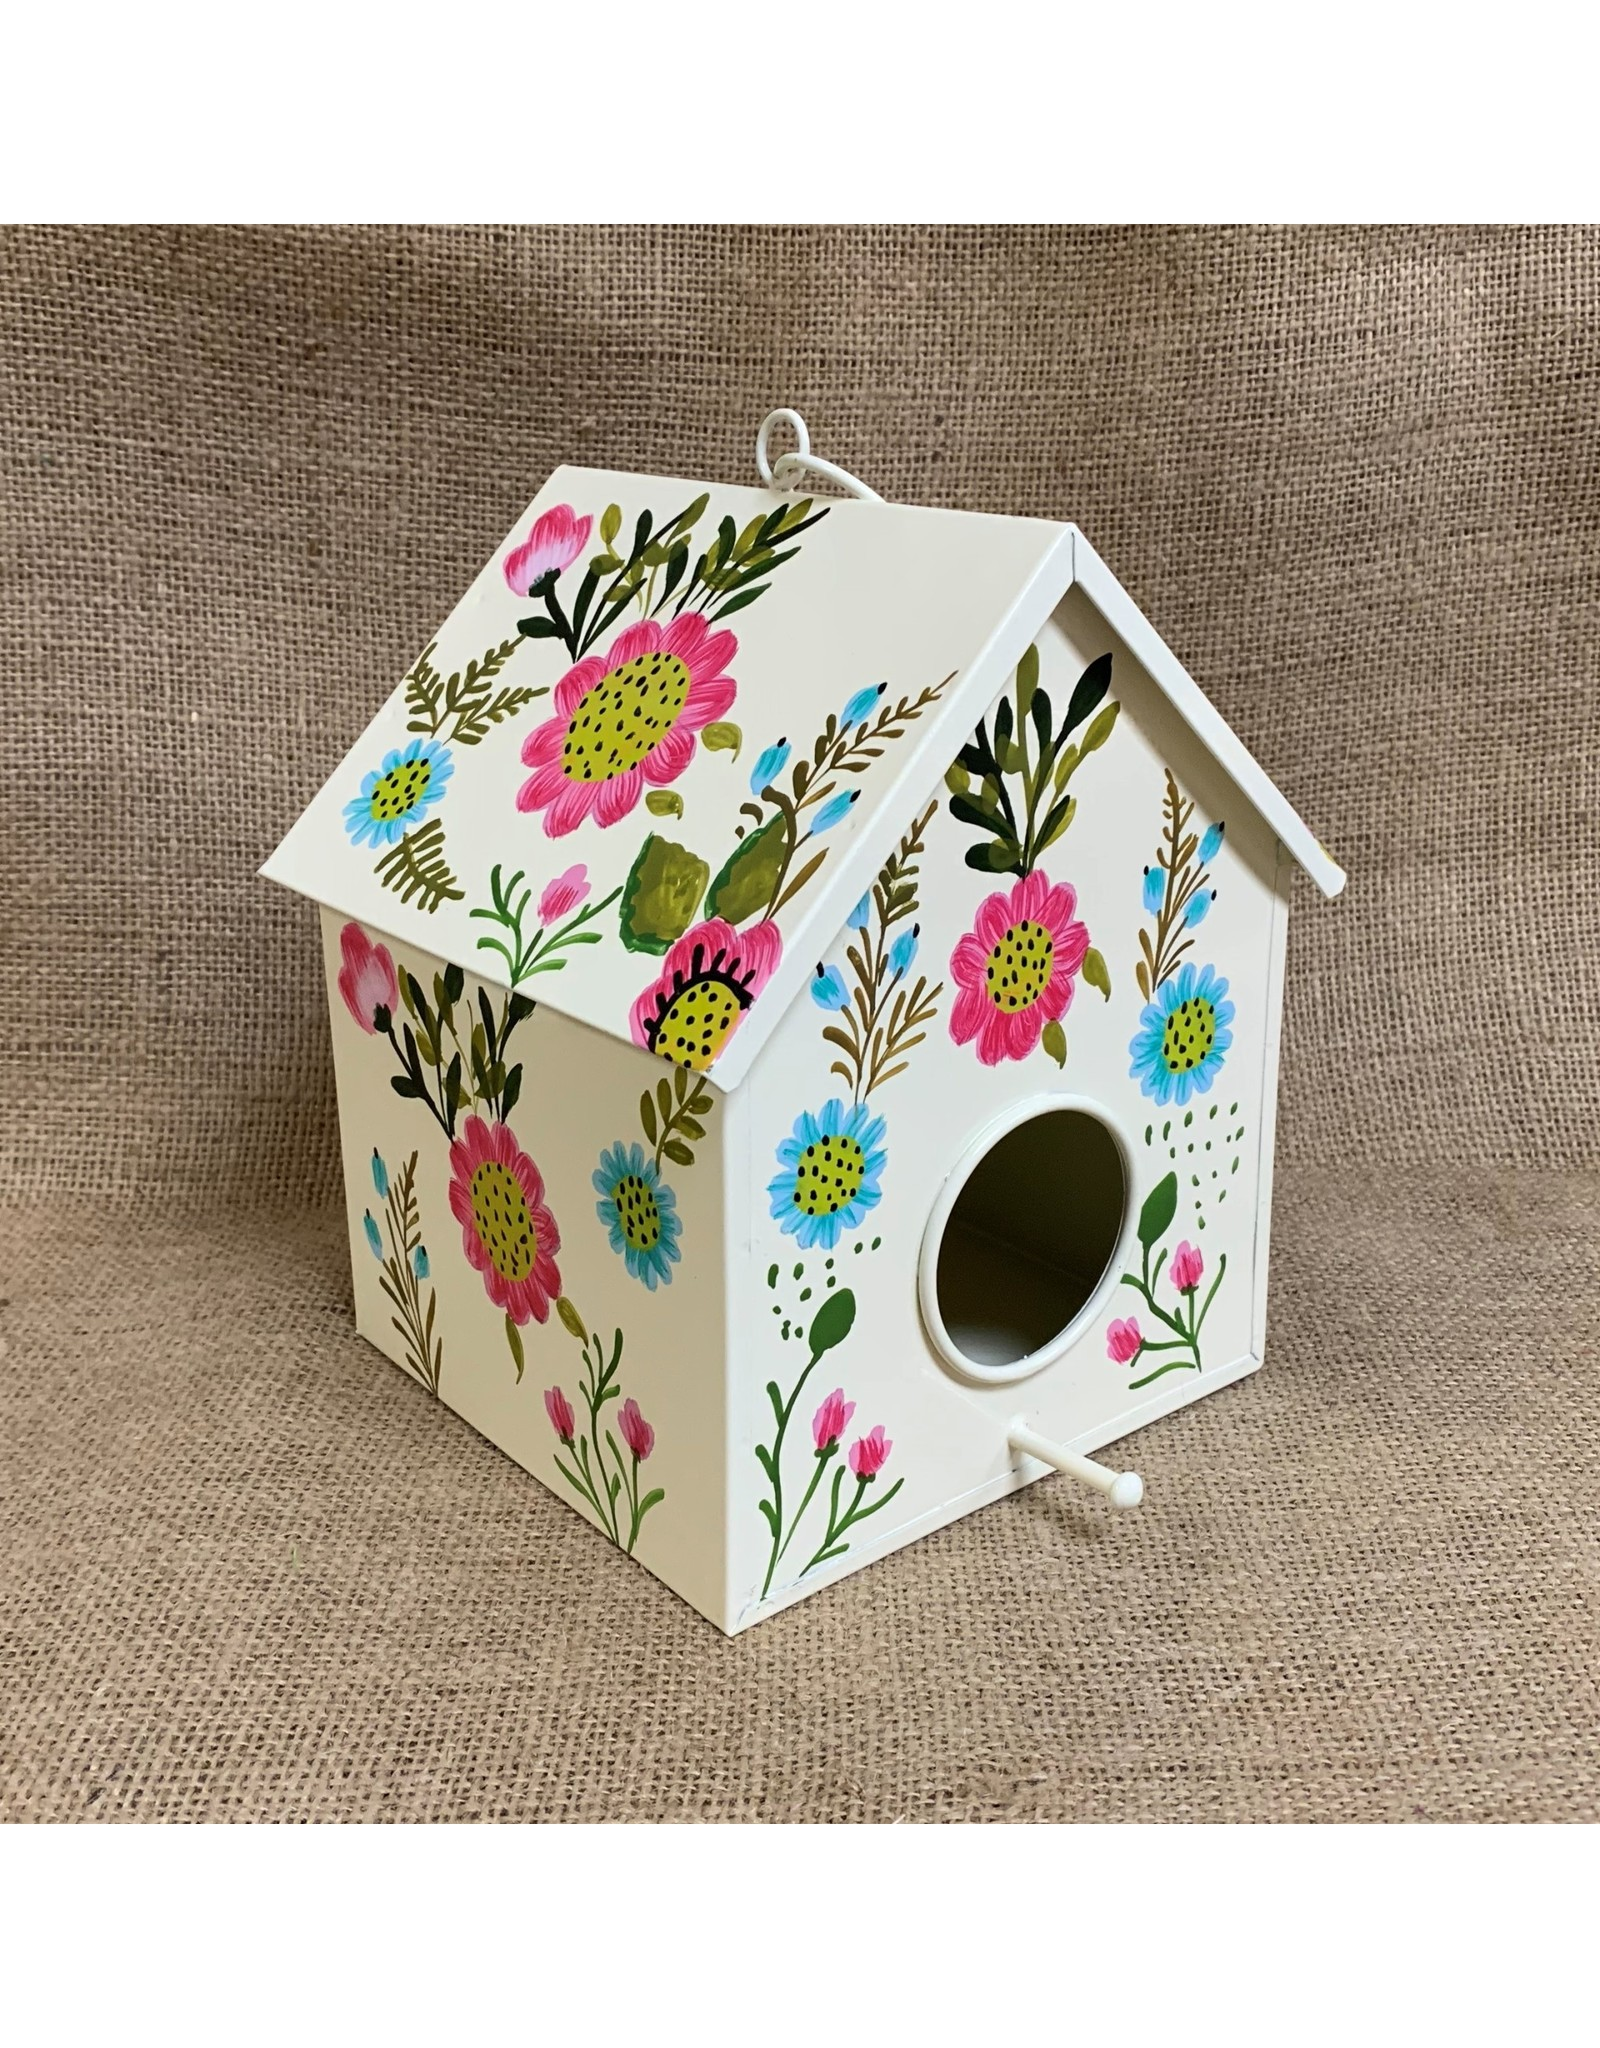 Ten Thousand Villages Metal Birdhouse White with Bright Floral